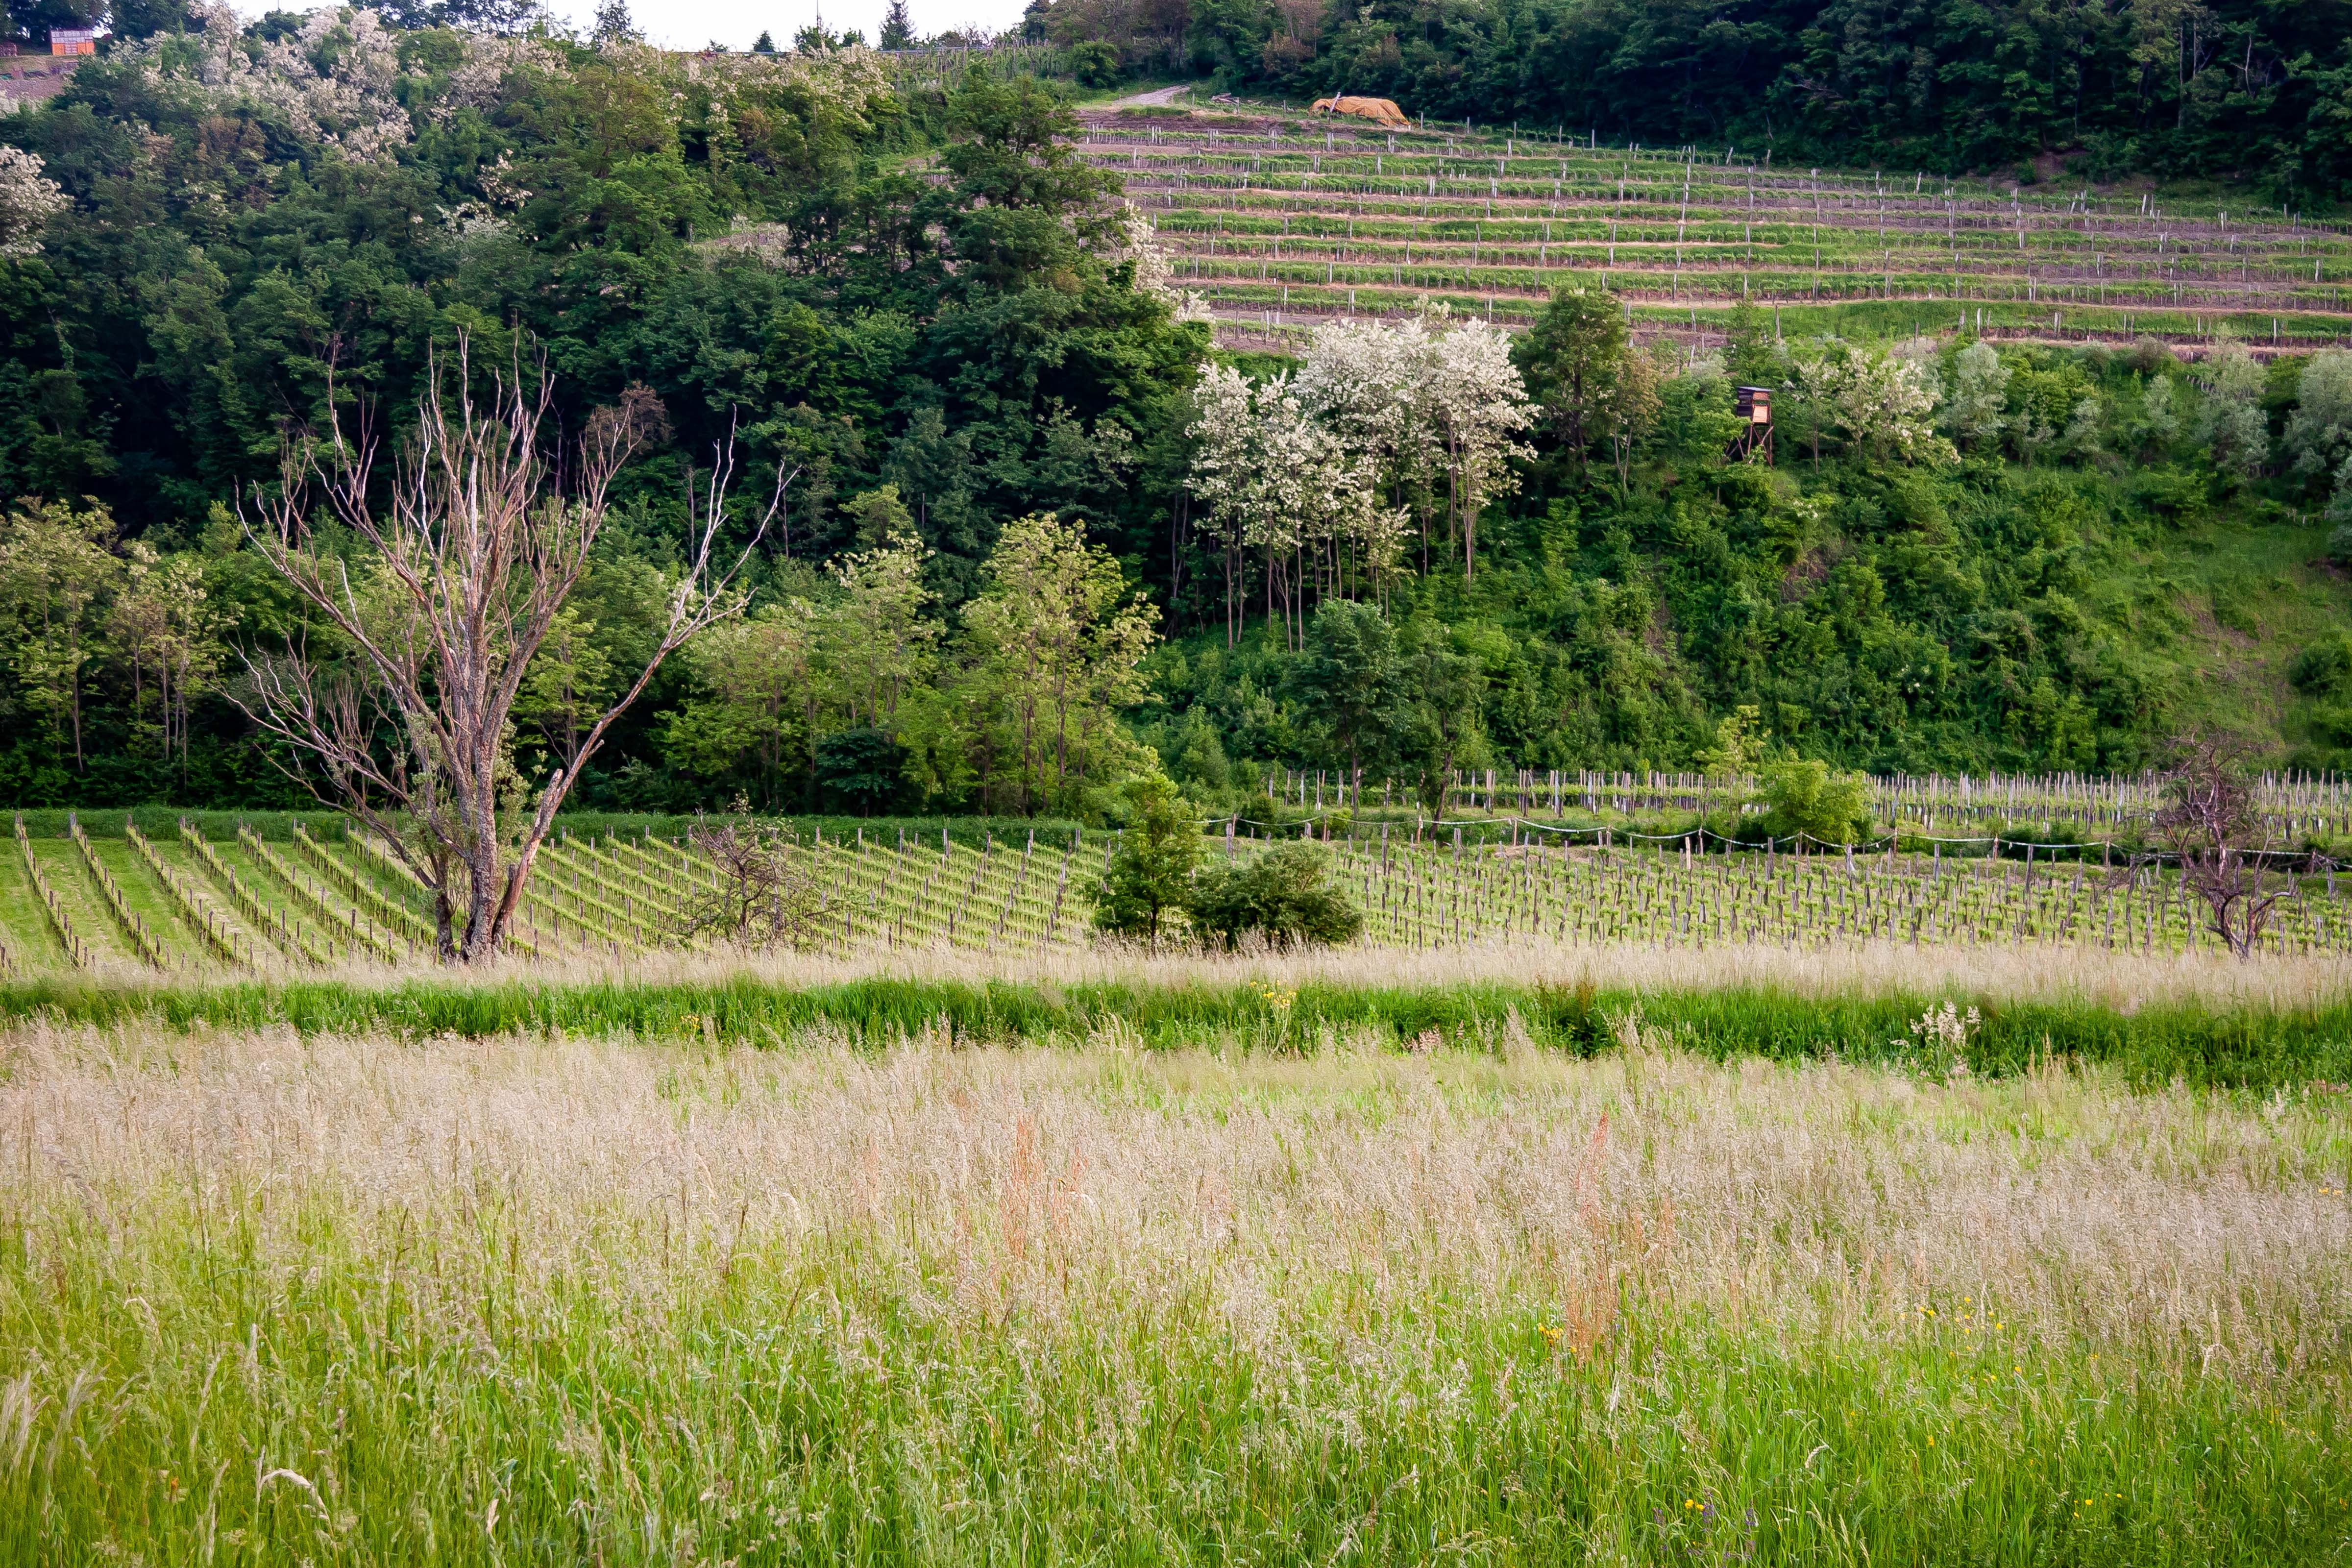 Slovenia, Brda Prov, Vineyards, 2006, IMG 6831